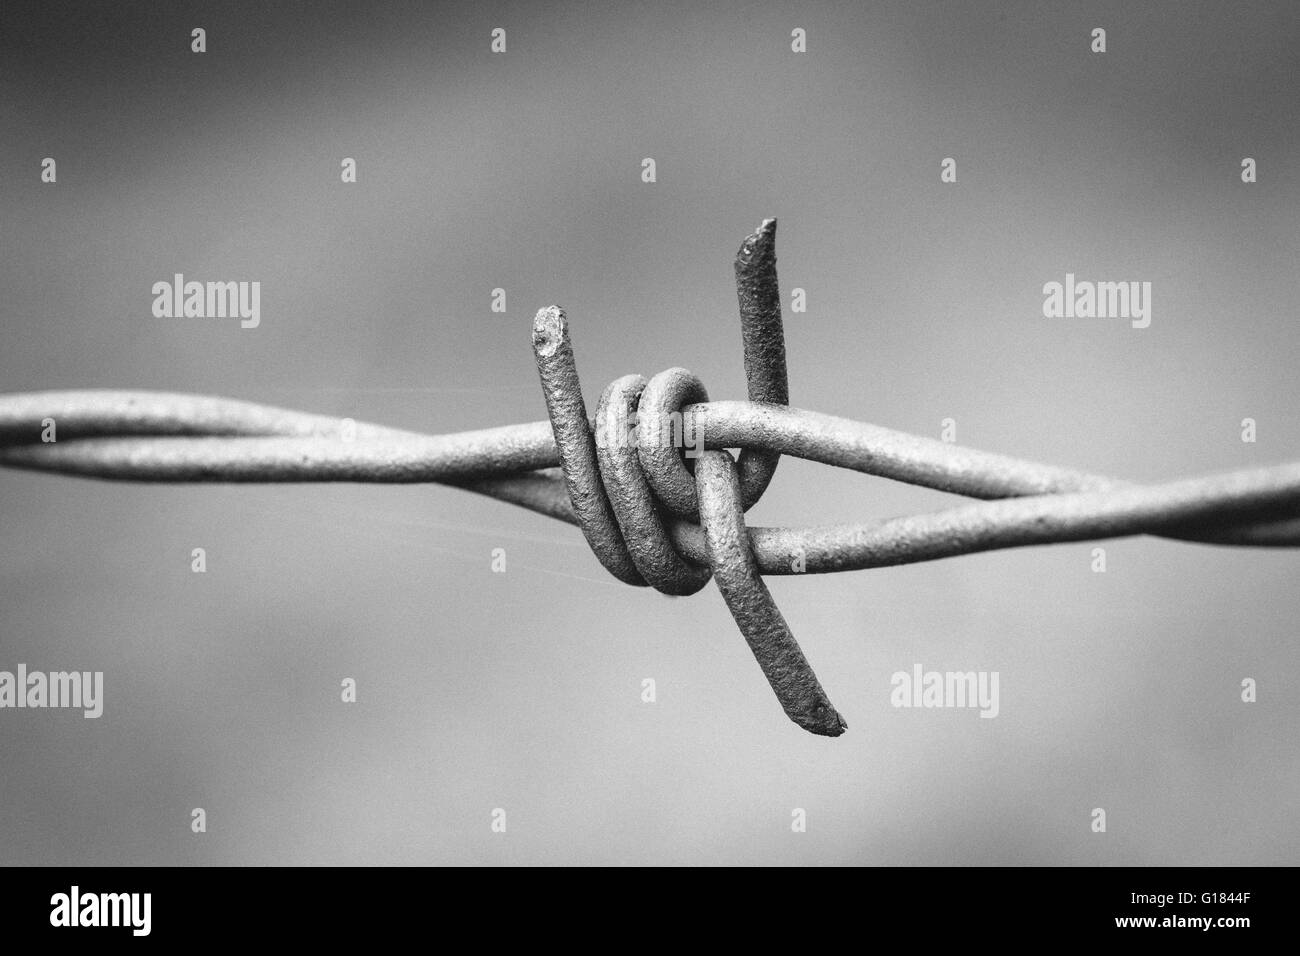 Monochrome black and white sharp spikes of a barbed wire fence. - Stock Image